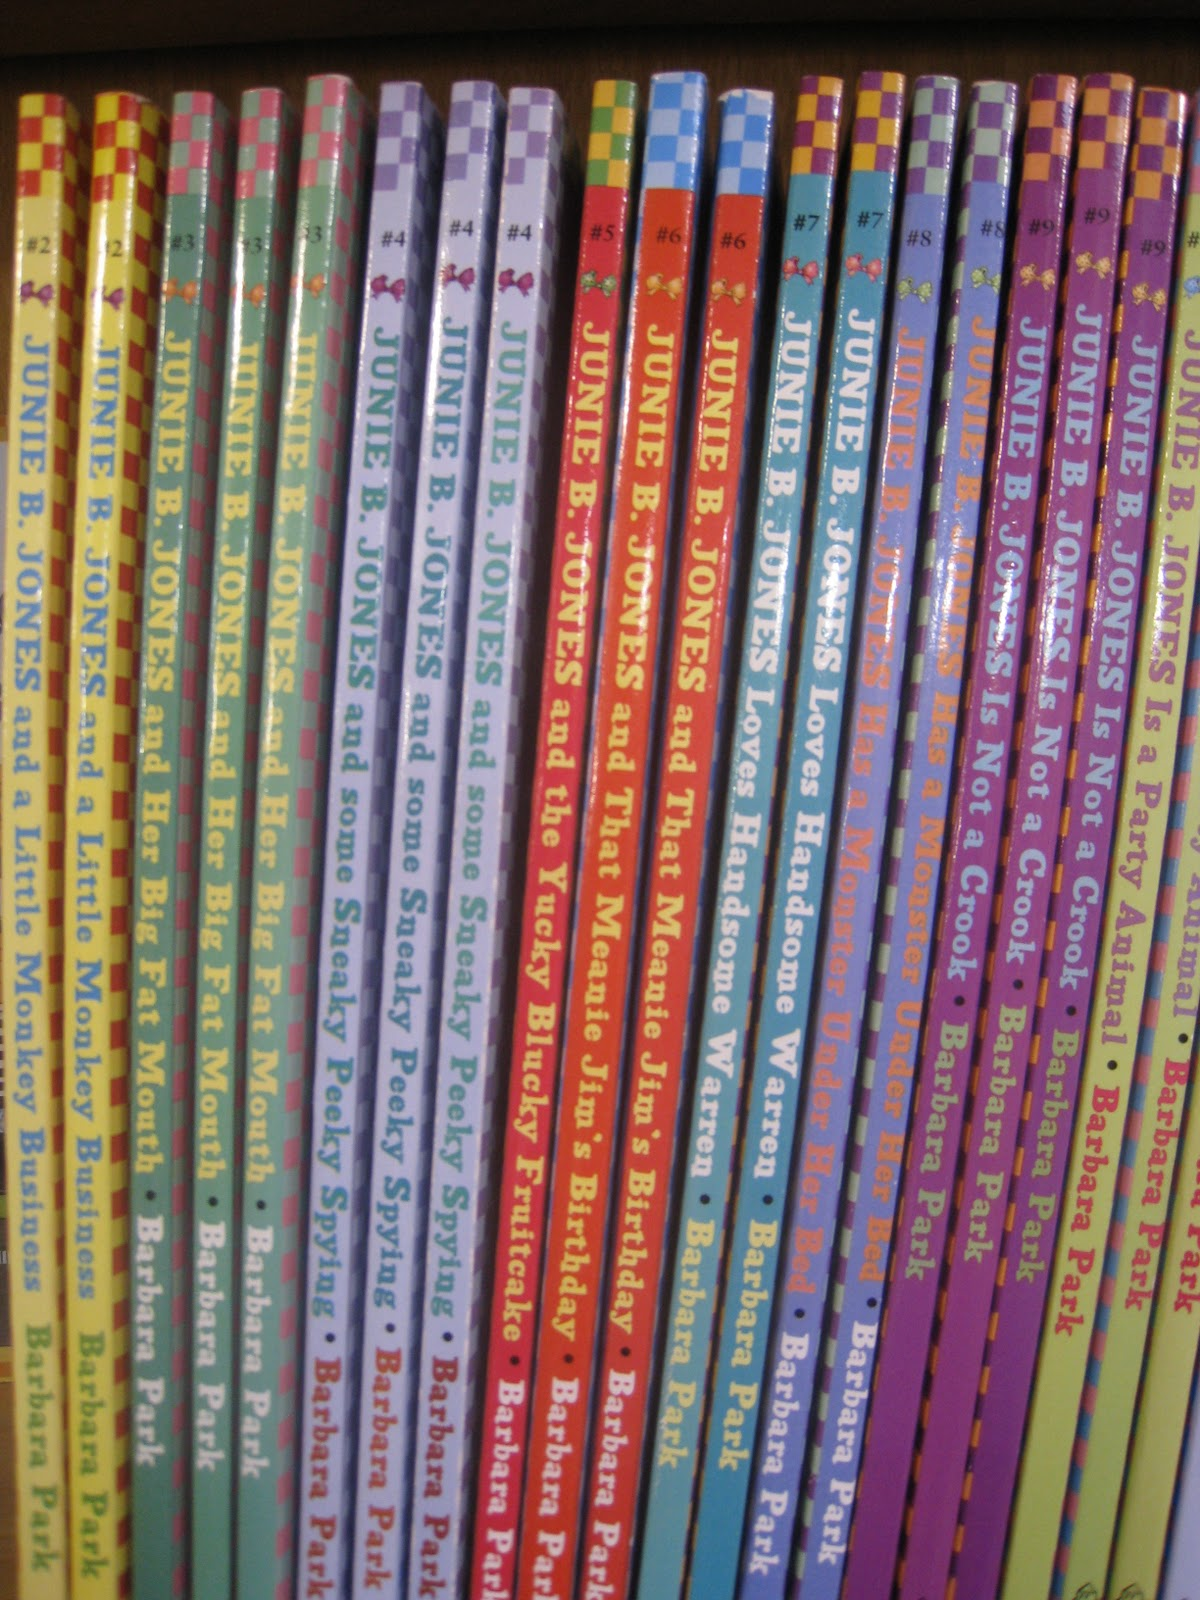 Junie b coloring pages - My Brain On Books What Booksellers